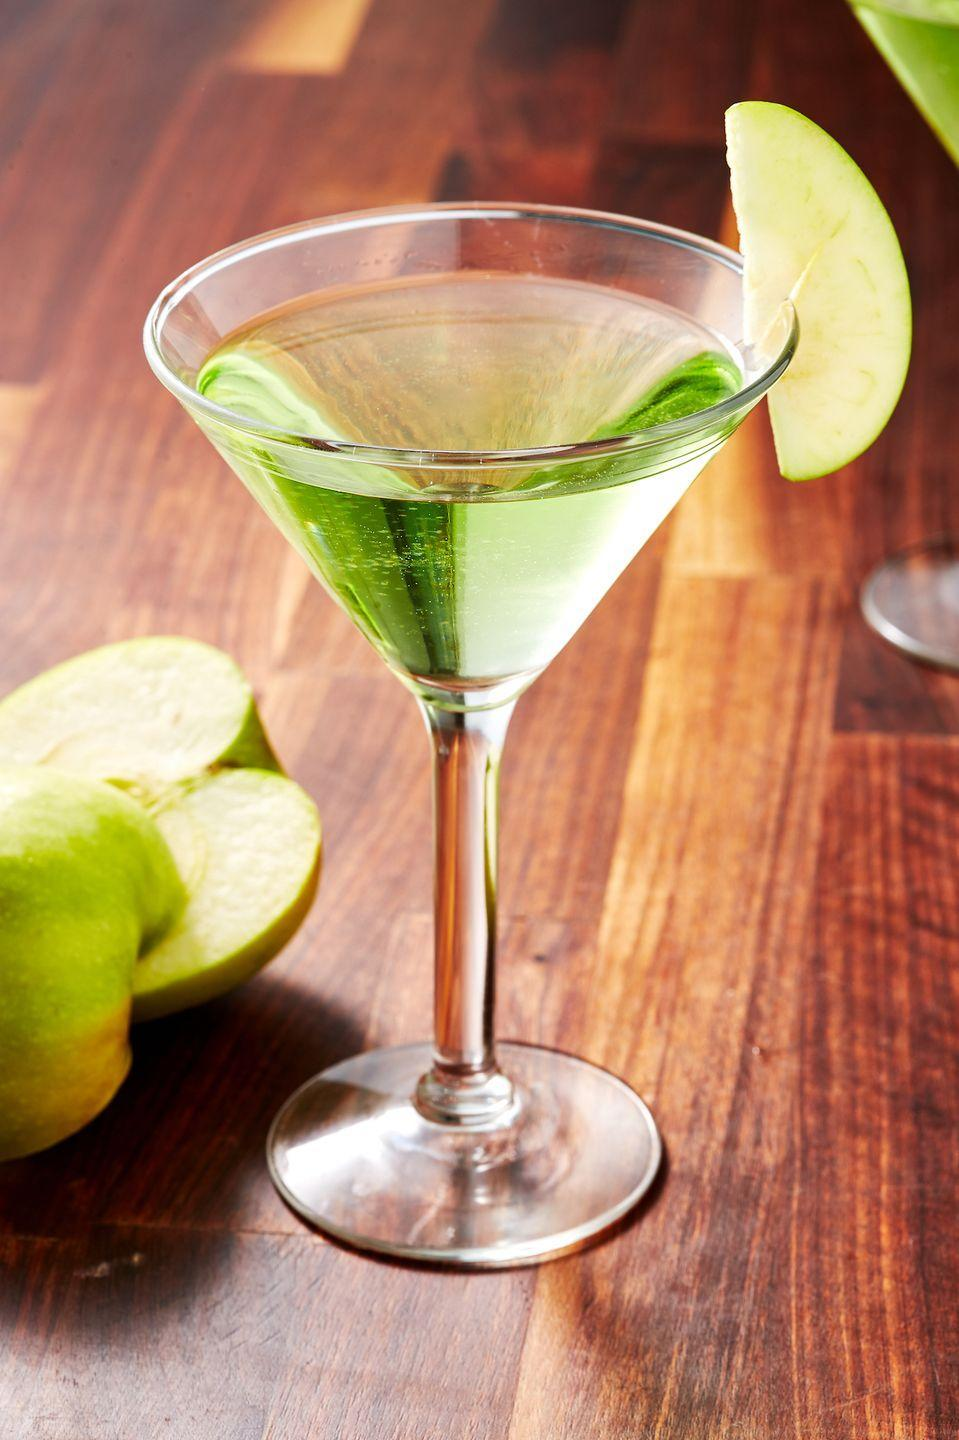 """<p>Green and fruity.</p><p>Get the recipe from <a href=""""https://www.delish.com/cooking/recipe-ideas/a28711920/appletini-apple-martini-recipe/"""" rel=""""nofollow noopener"""" target=""""_blank"""" data-ylk=""""slk:Delish"""" class=""""link rapid-noclick-resp"""">Delish</a>.</p>"""